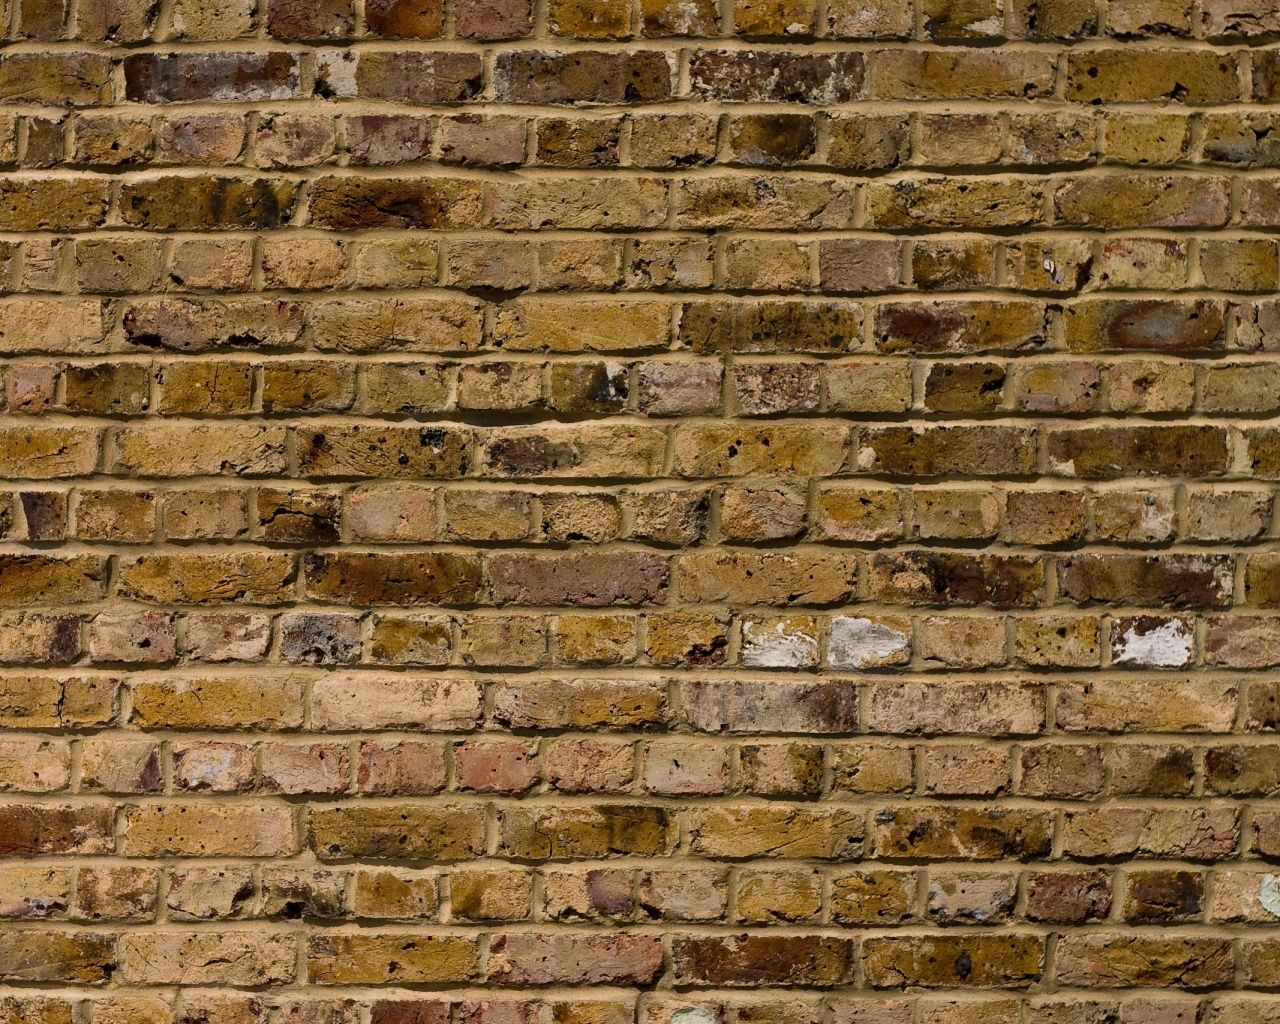 Old Brick Wall Download Photo Background Texture Old Brick Wall Brick Wall Wallpaper Brick Wallpaper Brick Wallpaper Hd